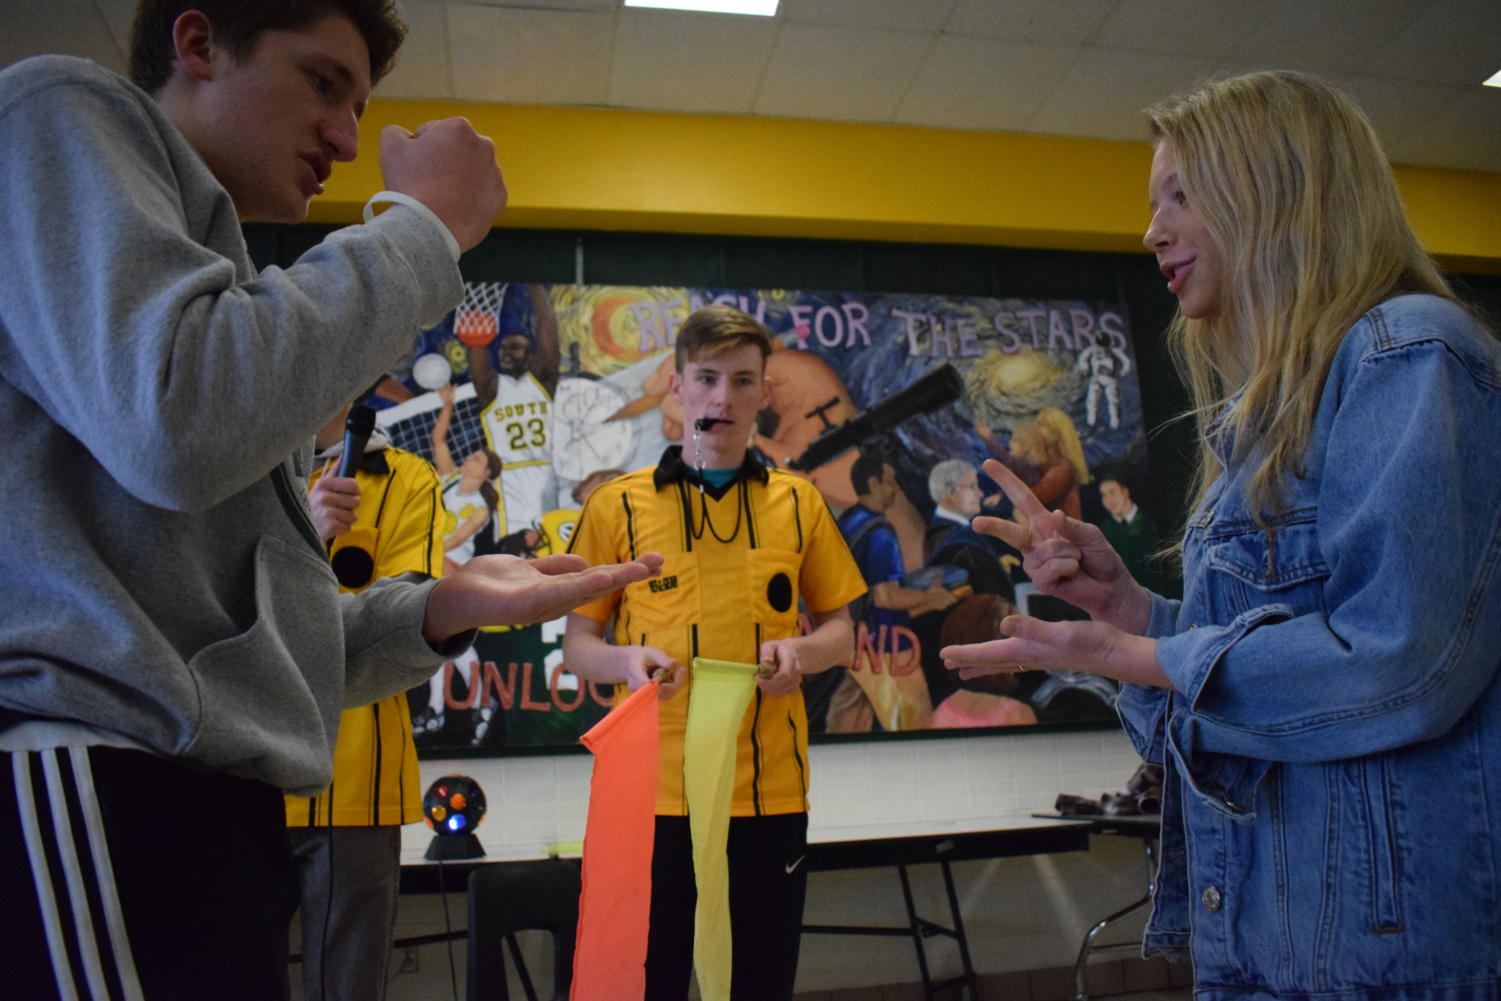 As part of KSMS activities, senior Kameron Ozburn officiates the Rock Paper Scissors match.